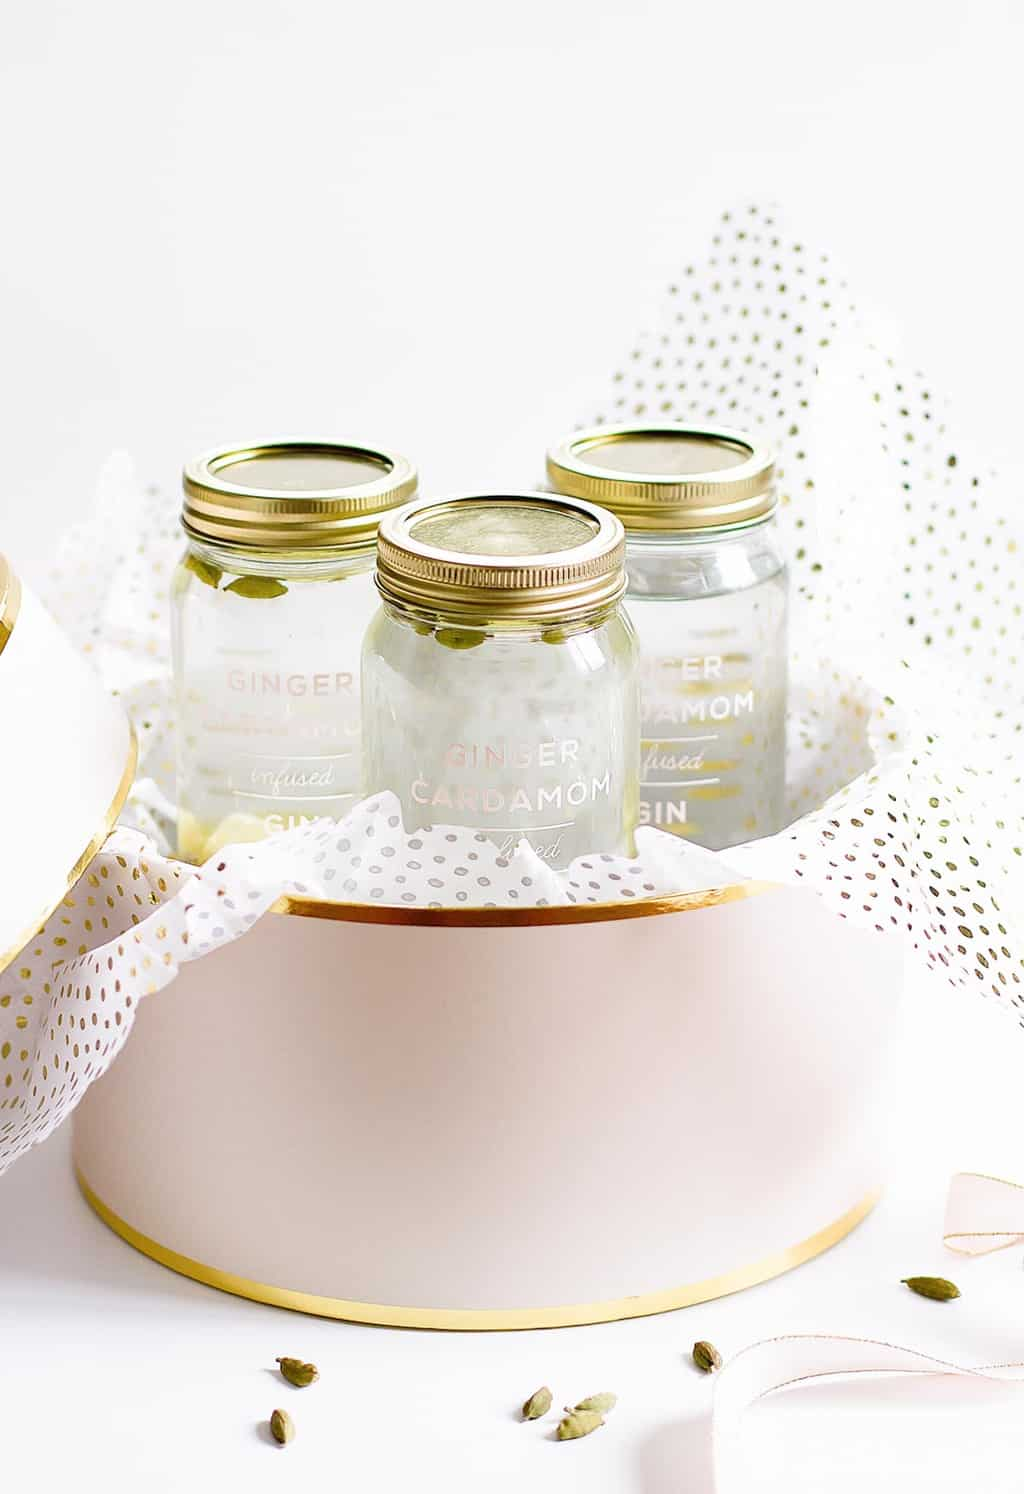 Ginger Infused Booze Holiday Gift Recipe by Sugar and Cloth, an award winning DIY blog.